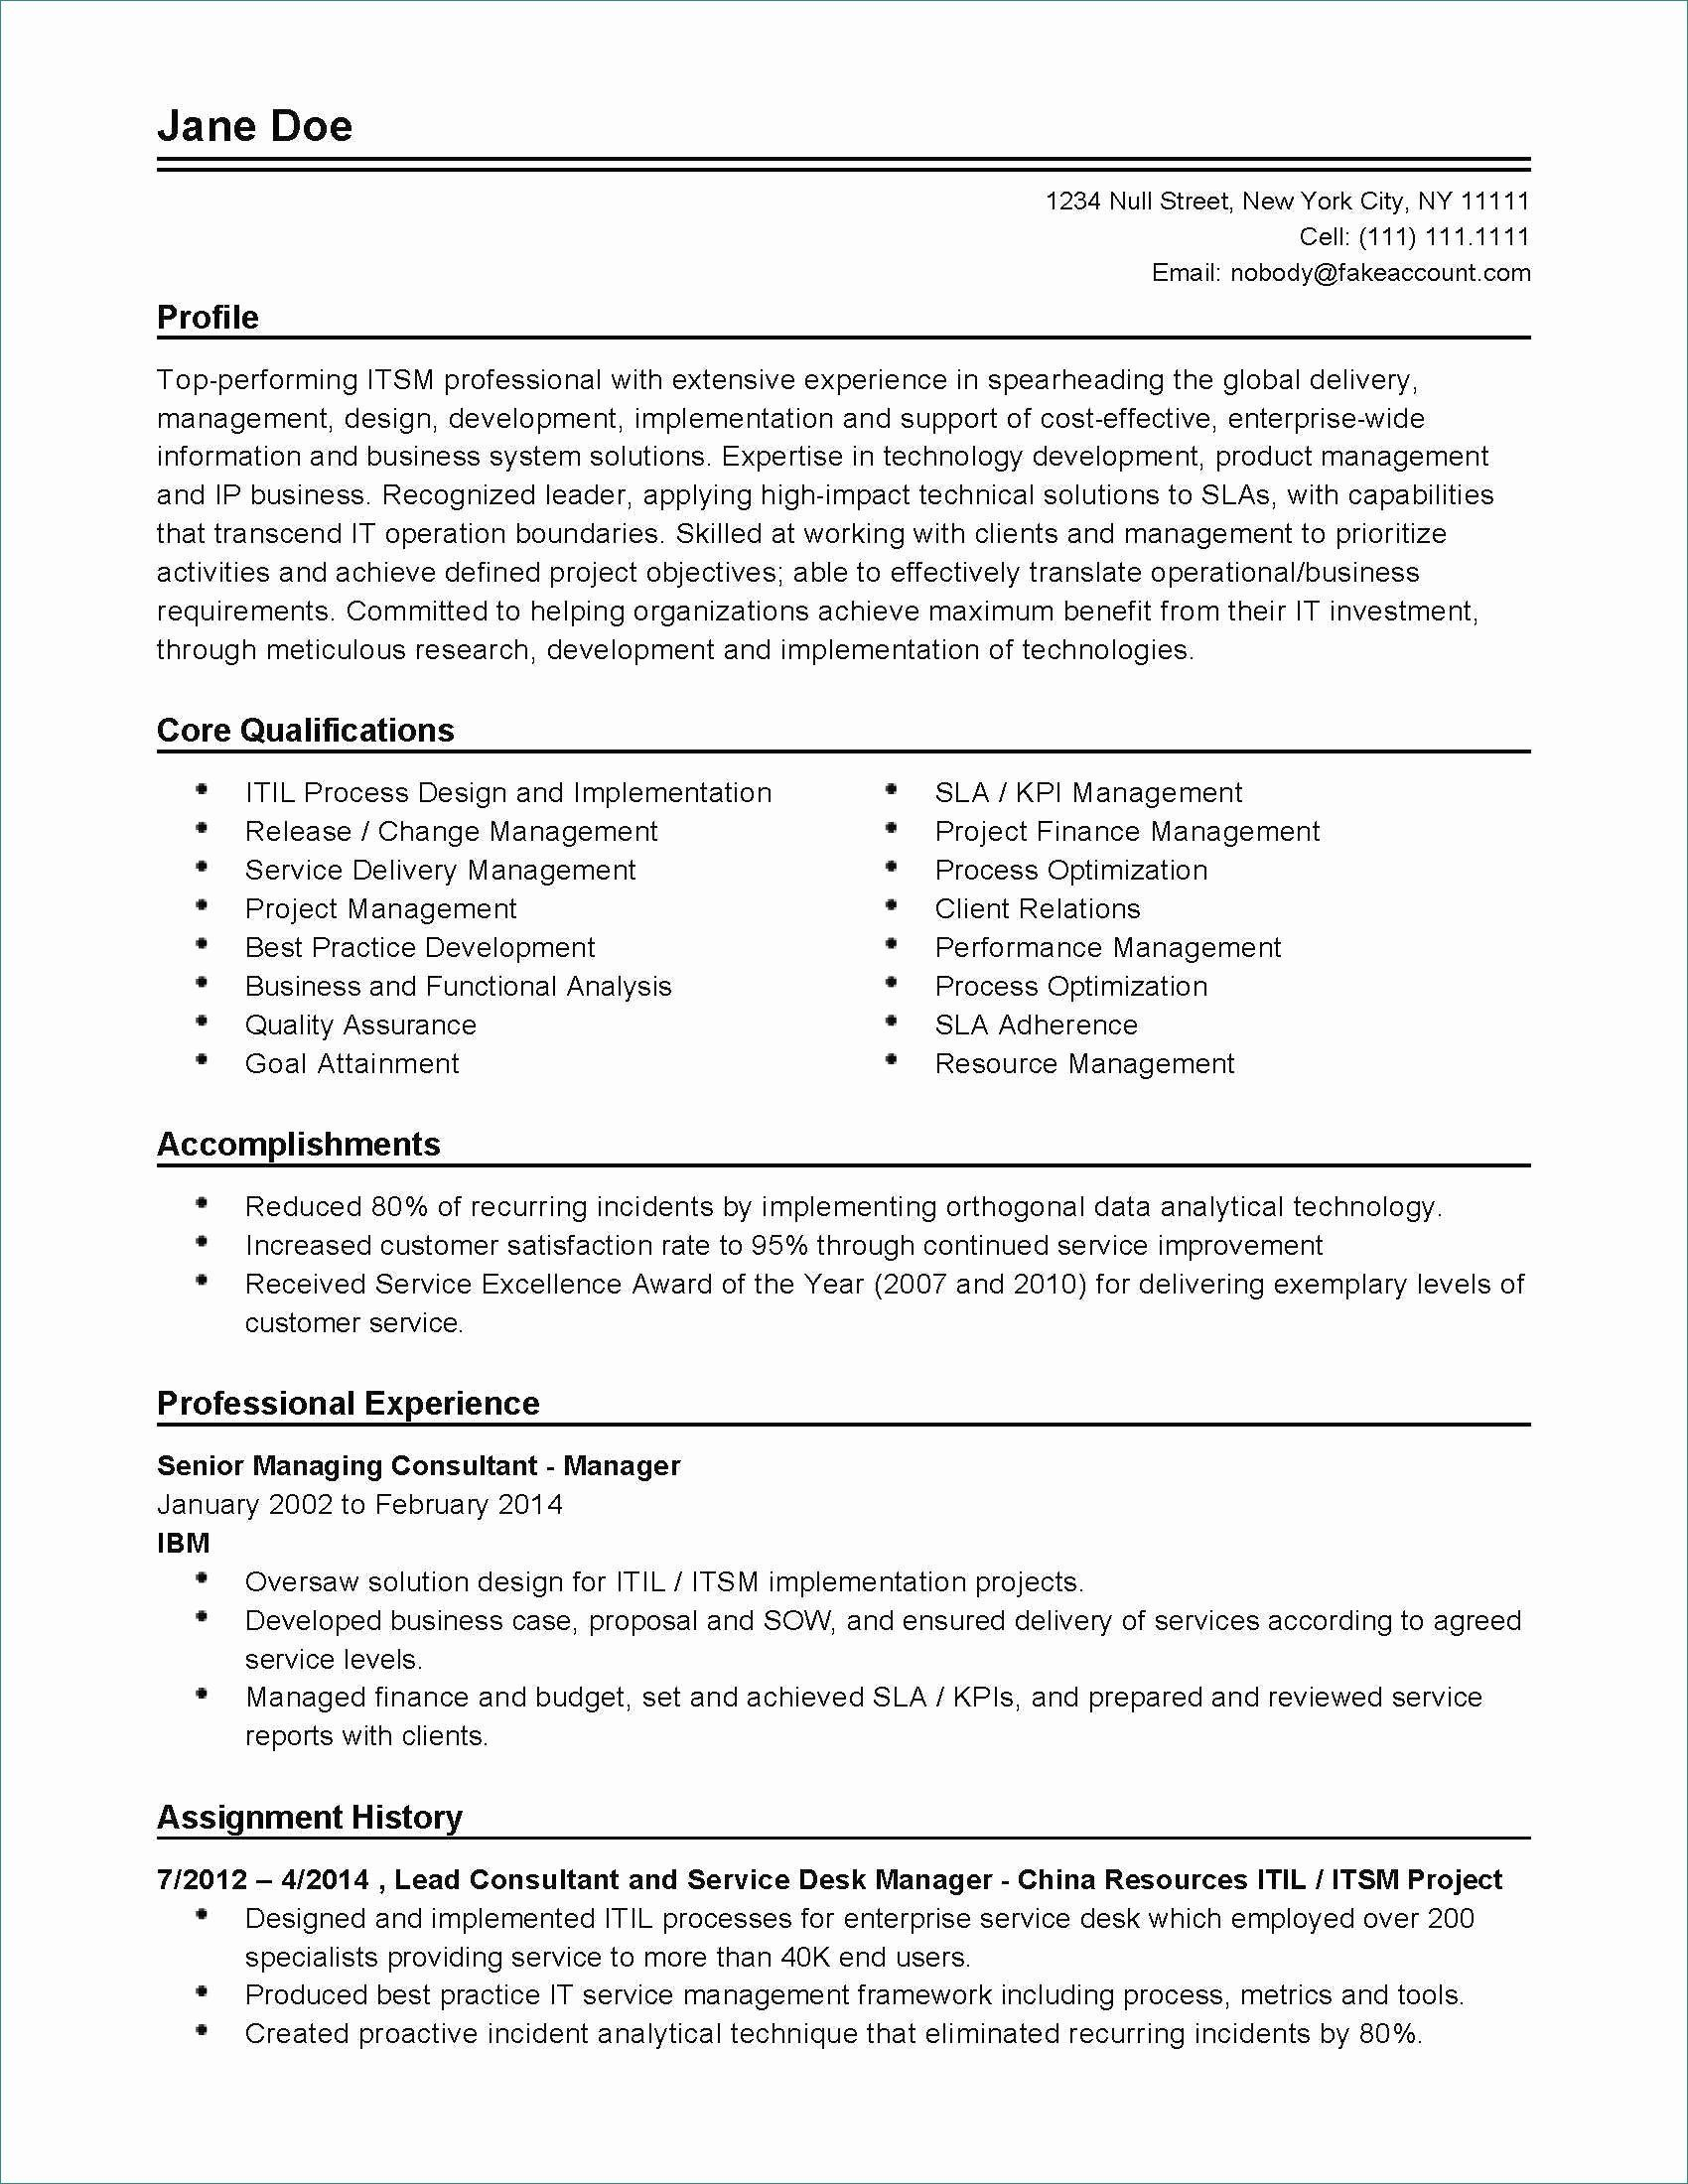 information security powerpoint template free resume best professional samples format for management position skills list examples